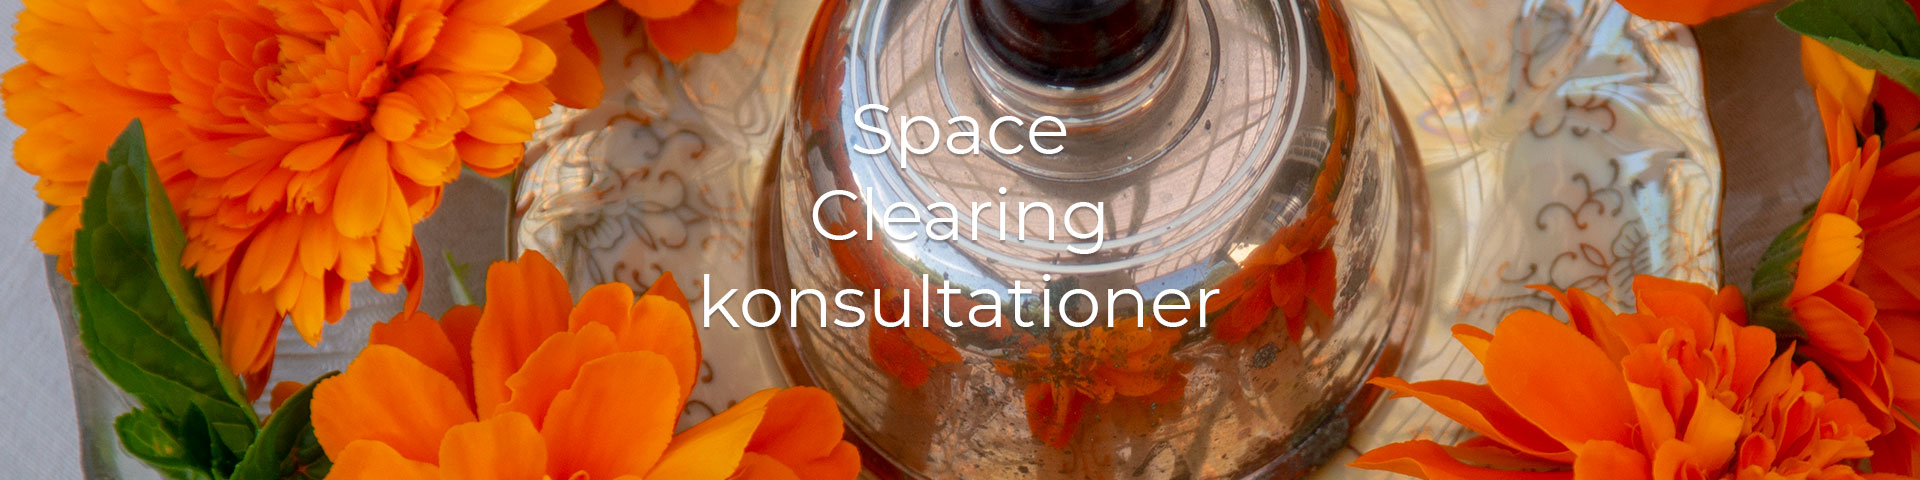 Space Clearing konsultation